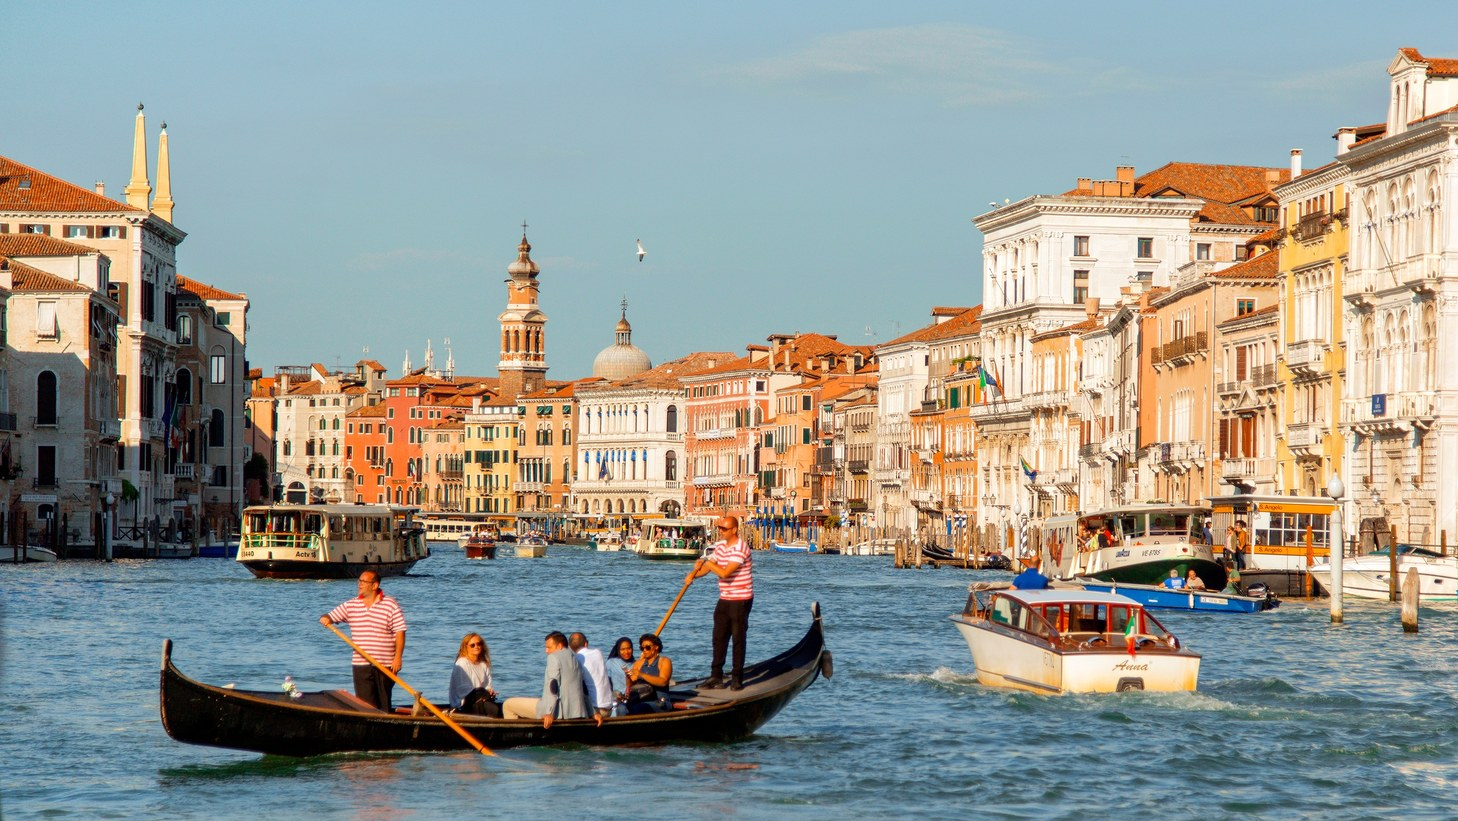 One of Venice's iconic gondola on the Grand Canal.